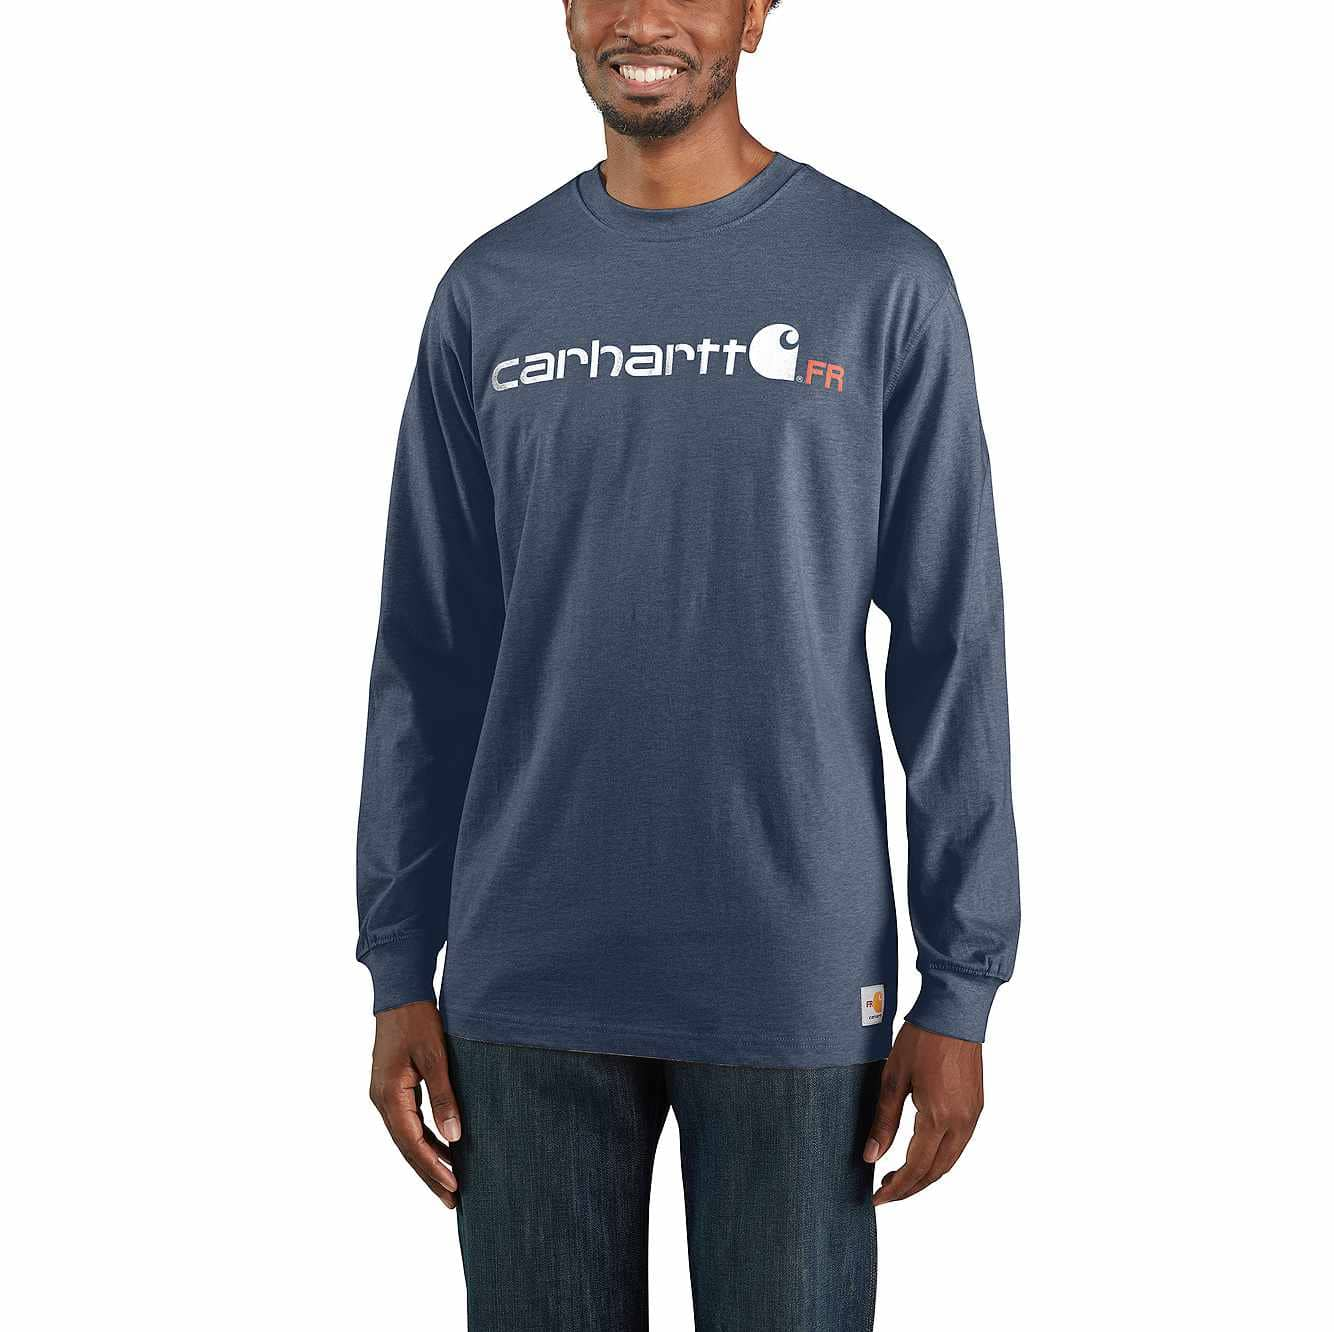 Picture of Flame-Resistant Force Original Fit Midweight Long-Sleeve Logo Graphic T-Shirt in Dark Blue Heather